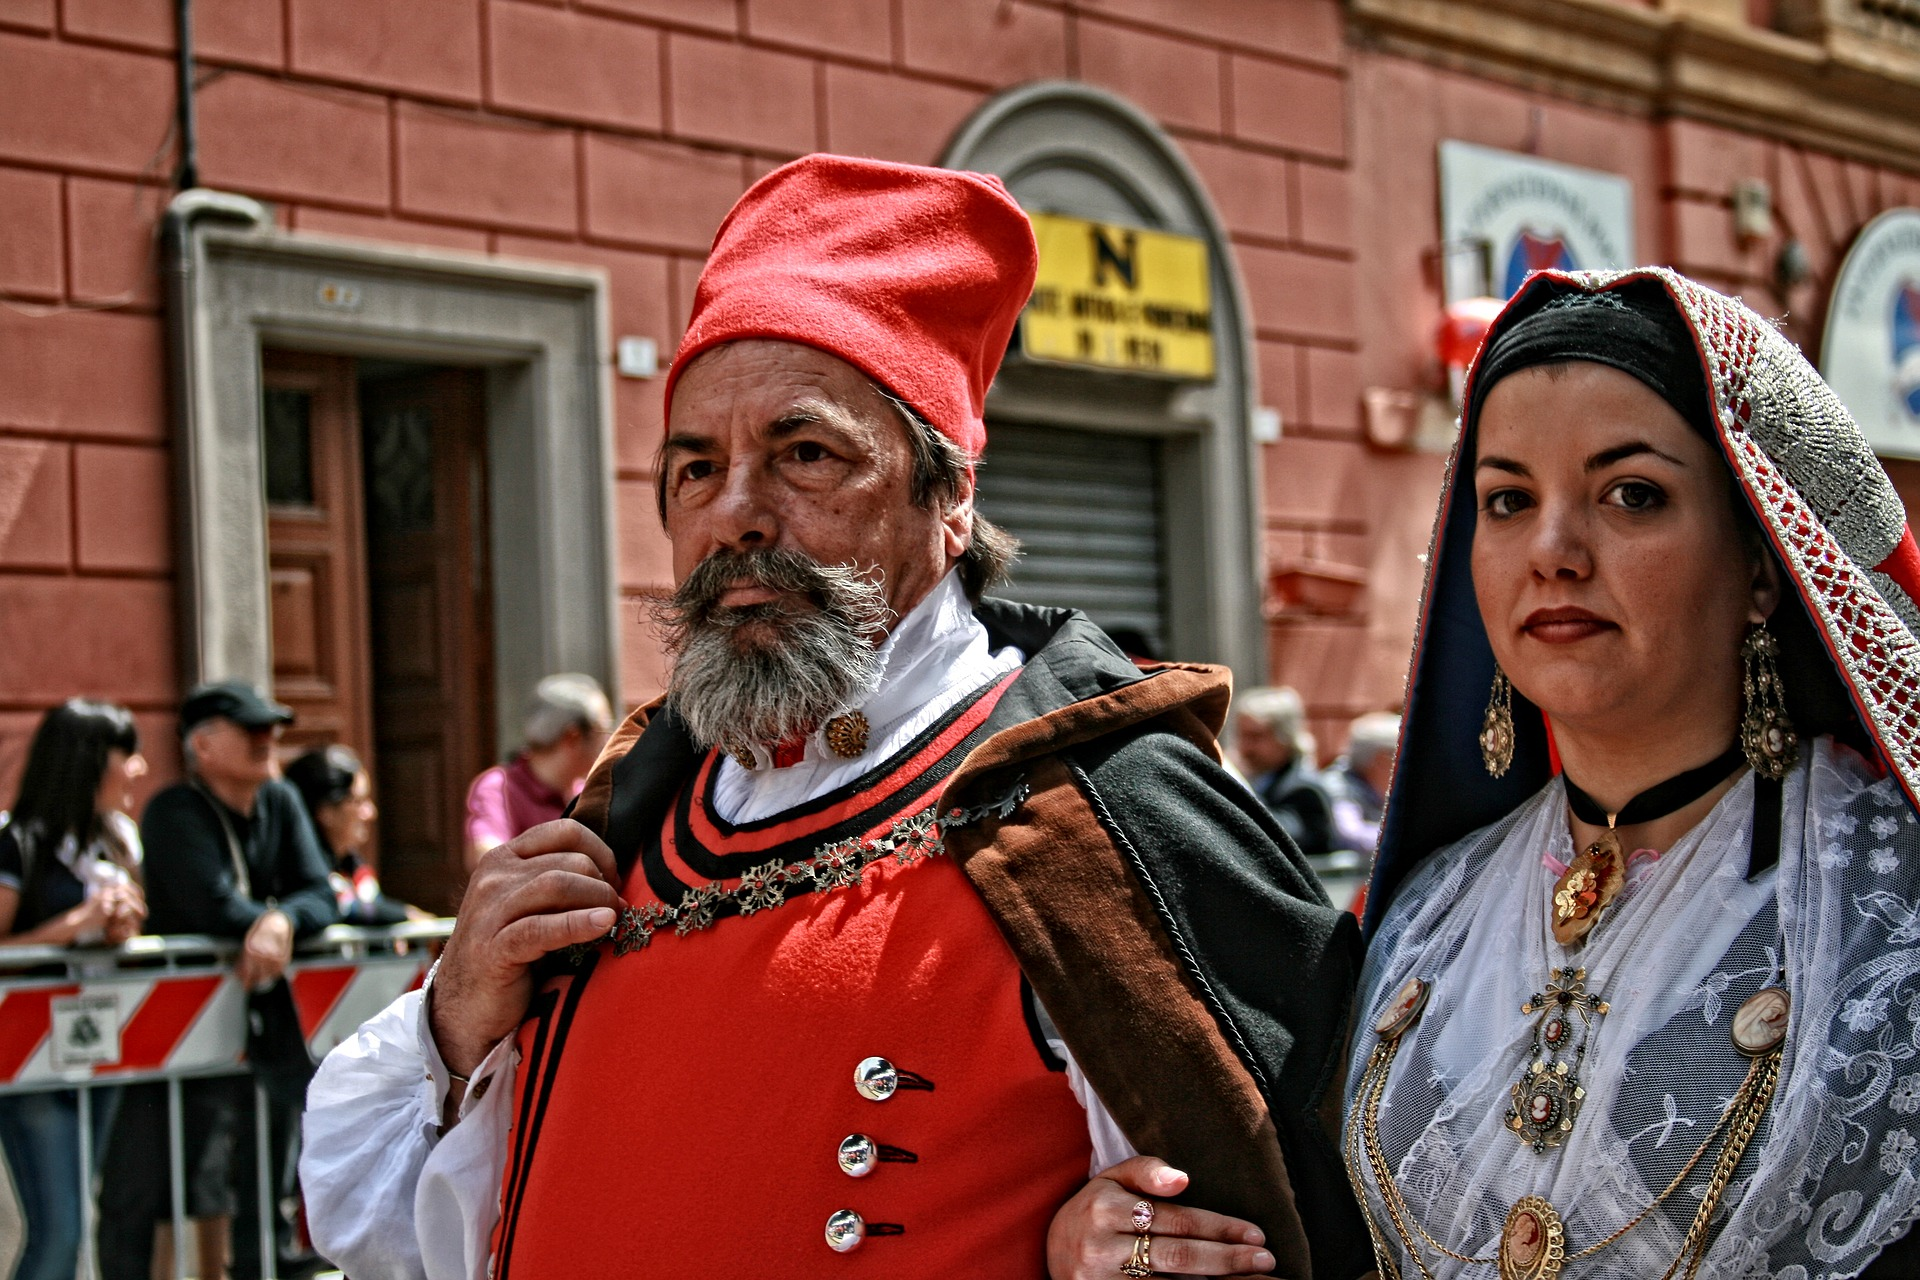 A man and women at a Sardinian celebration.